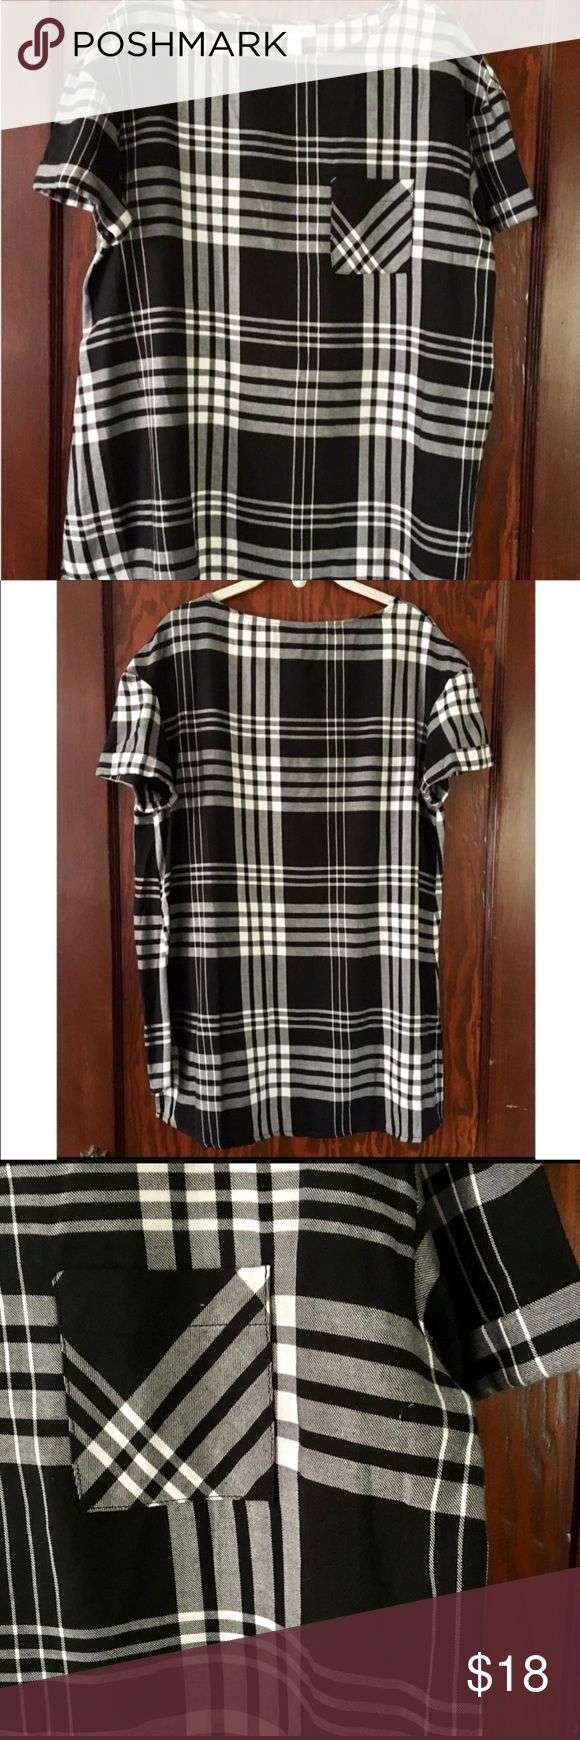 Plaid Liz Lange Maternity Tunic Lightweight black and white plaid maternity tunic. Only worn once! Excellent condition. Pre and post pregnancy I've worn it with leggings or skinnies and booties. Works as a regular tunic as well since it's a size Small. Liz Lange for Target Tops Tunics